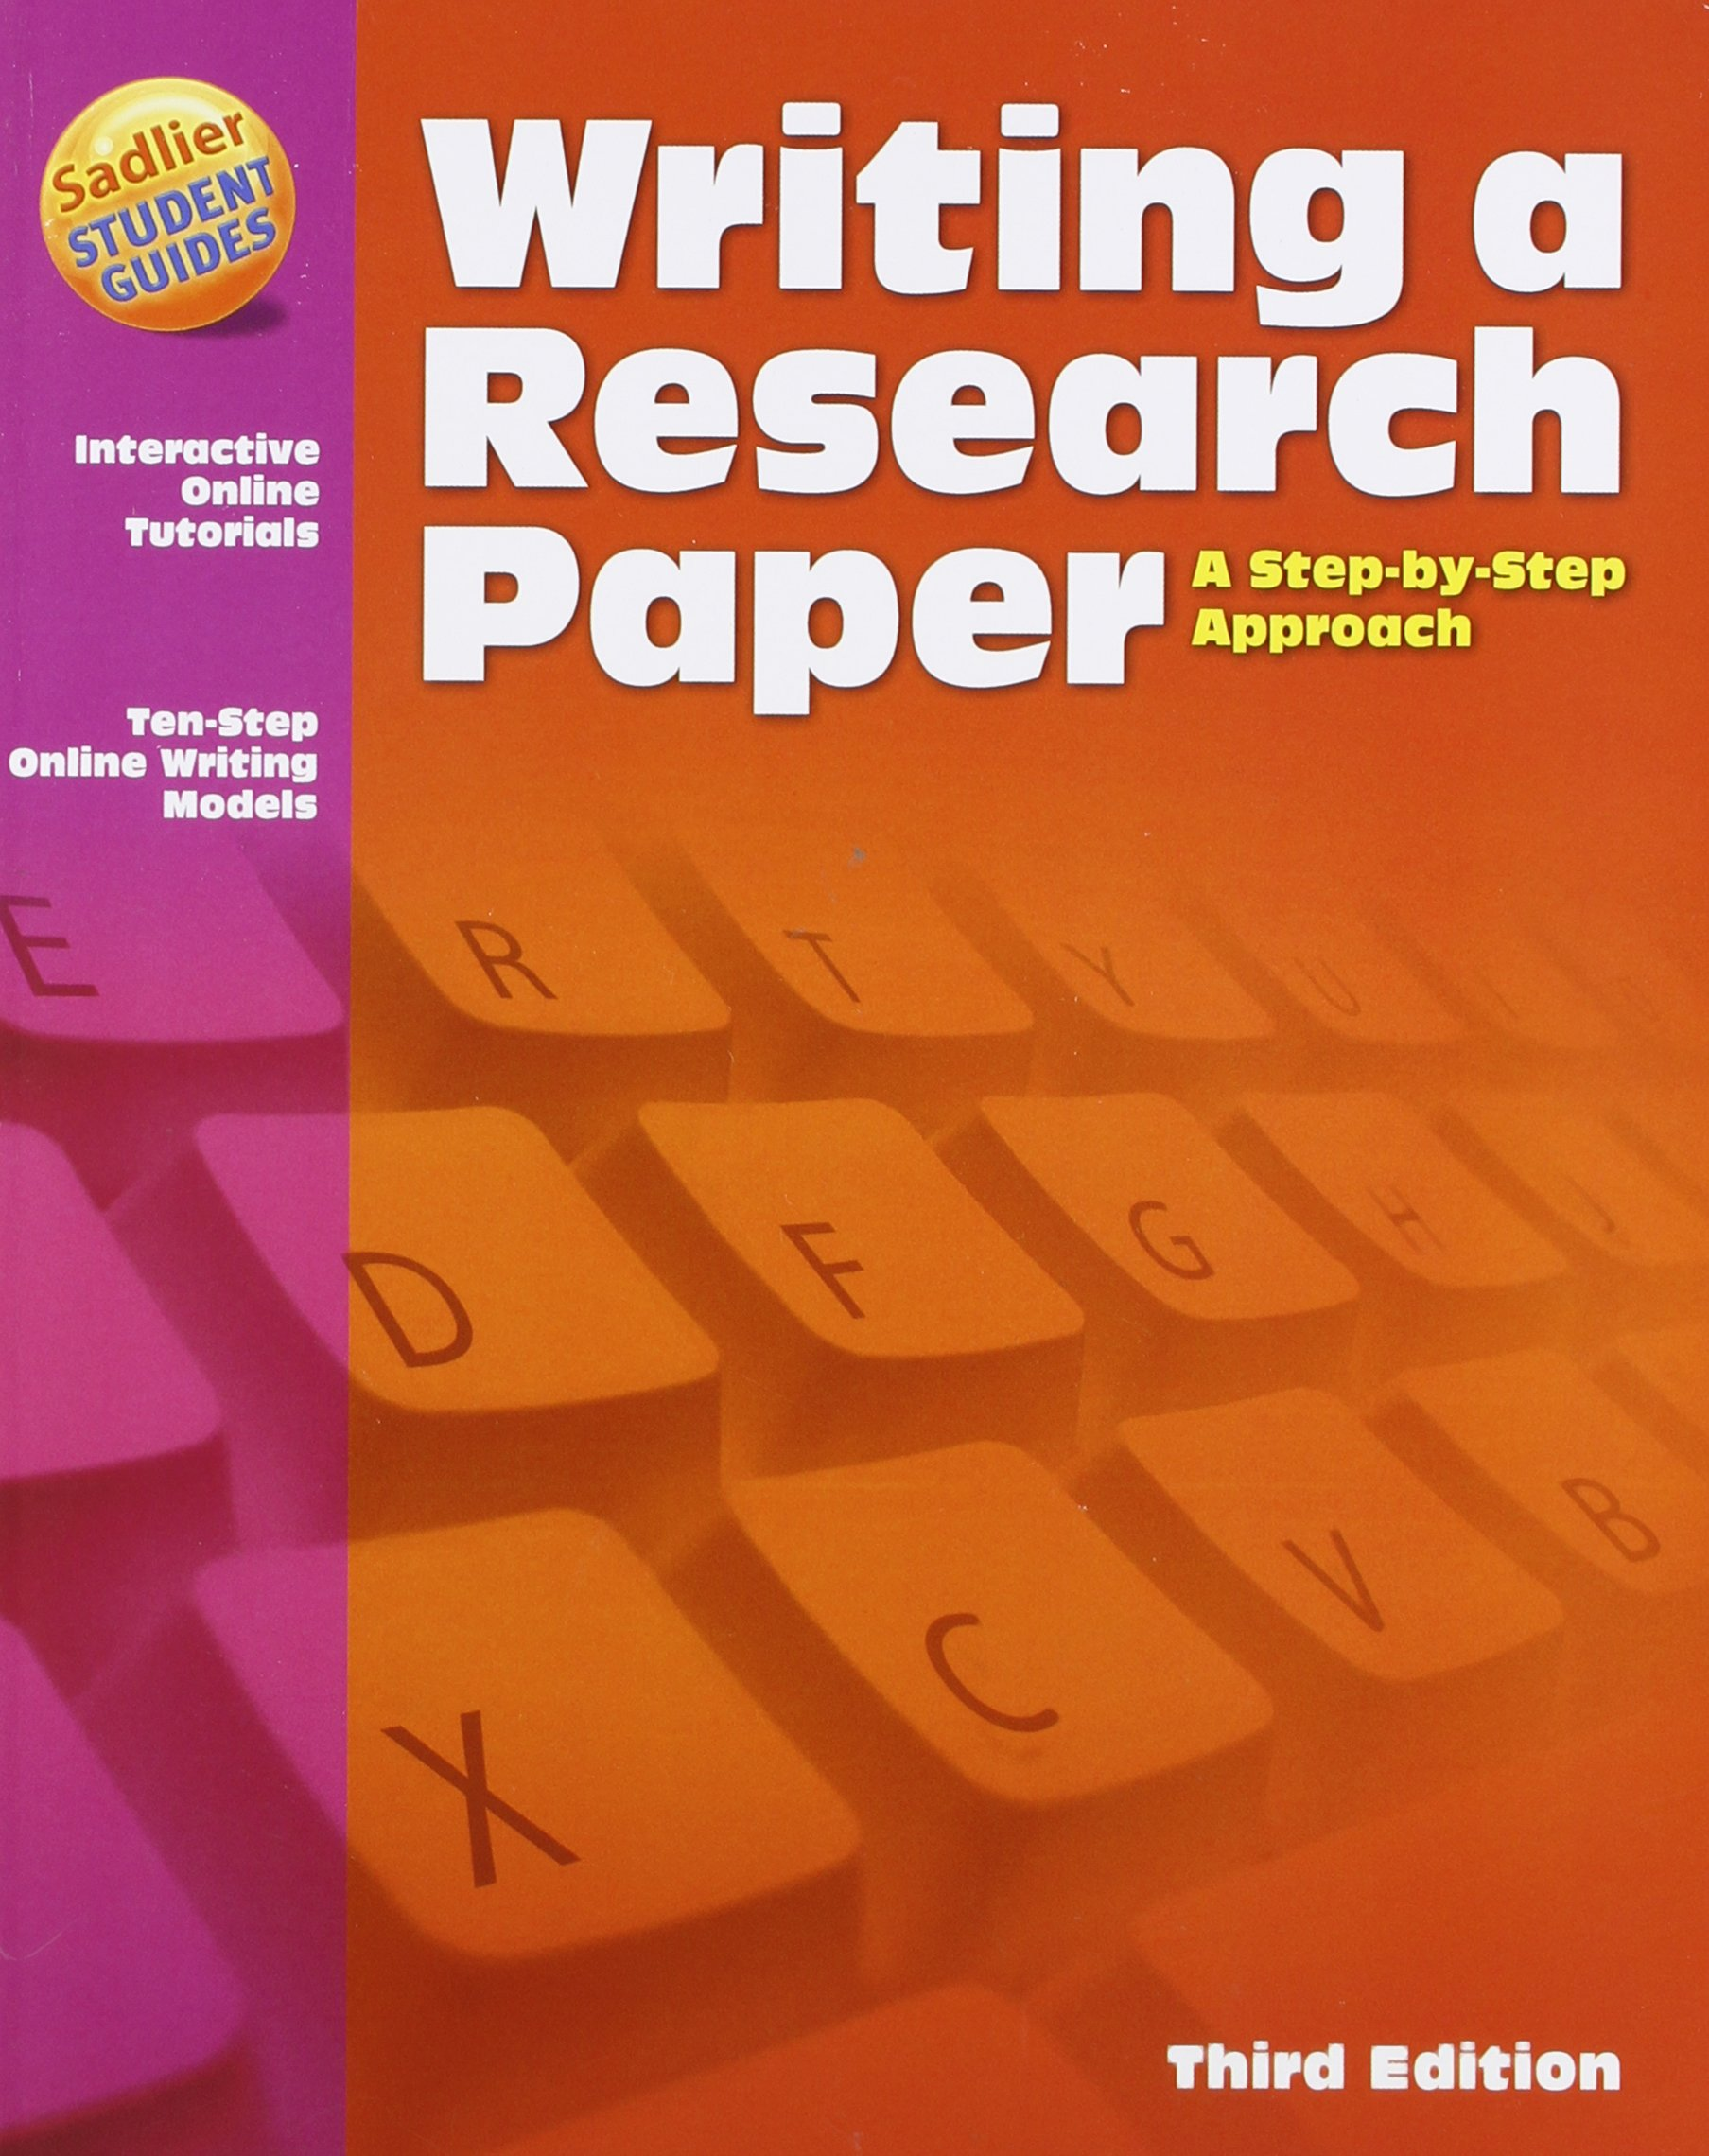 028 81uqfpthpml Research Paper Writing Fascinating Of Great Pdf Harvard Style Sample Full